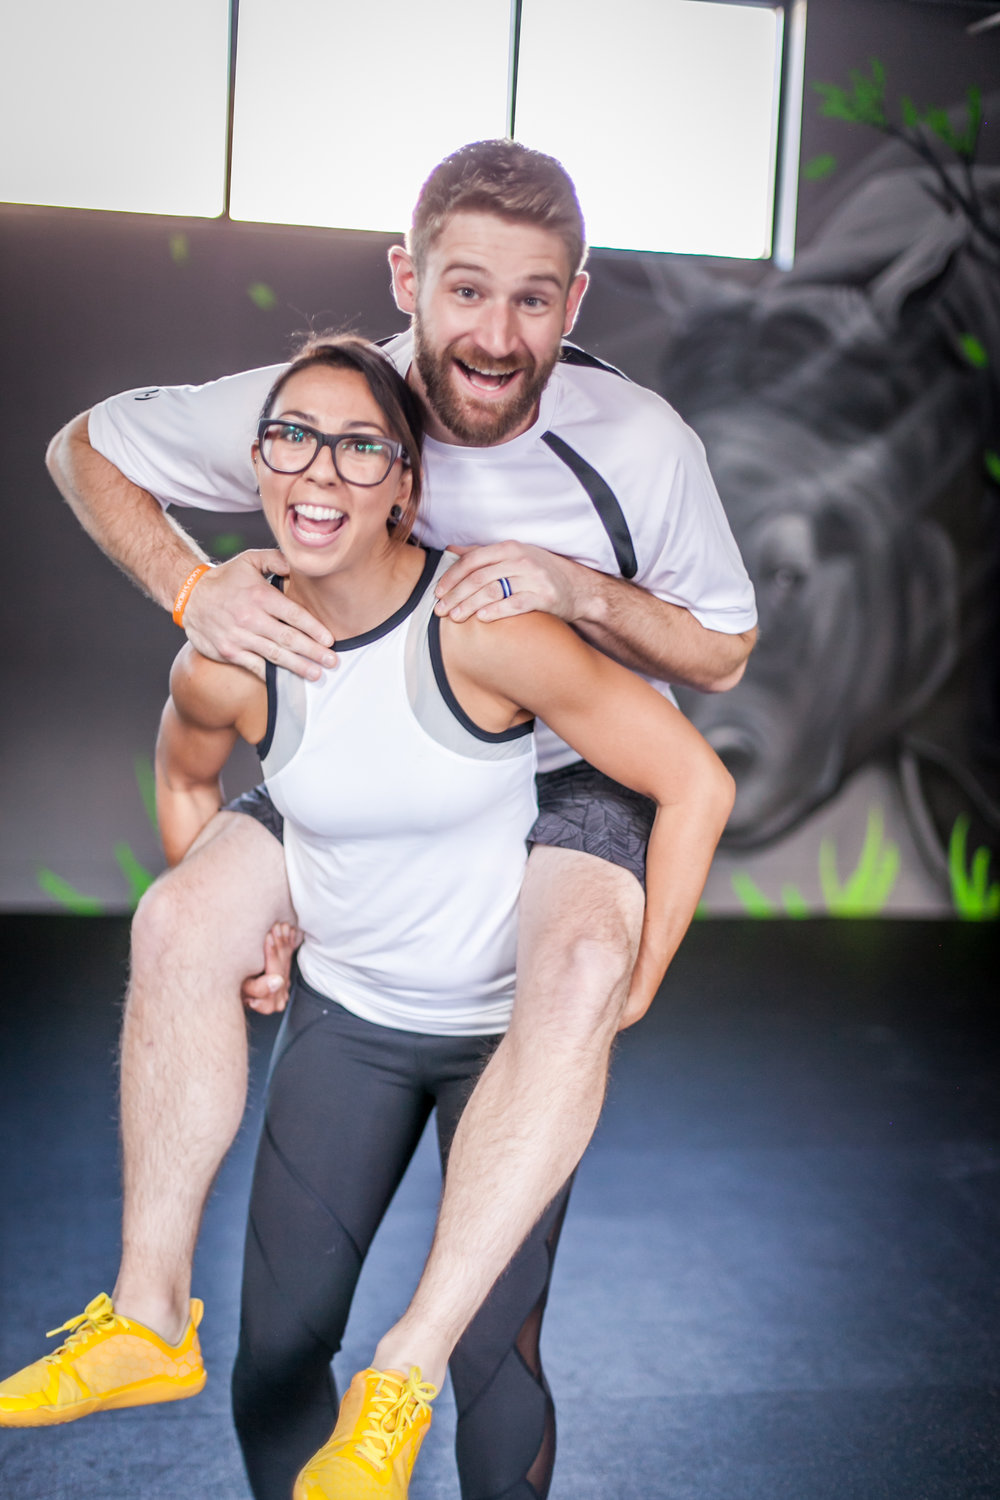 OUR OWNERS - The Fitness Branch is run by Kettlebell fanatic Leandra Branch and her husband, who also caught the Kettlebell bug, Benjamin Howard.The Fitness Branch offers clients a one-of-a-kind personal experience with expertise that goes beyond making you sweat! We believe that within a fun, supportive, inspirational and educated environment anyone can exceed their goals and become a healthier, stronger version of themselves.